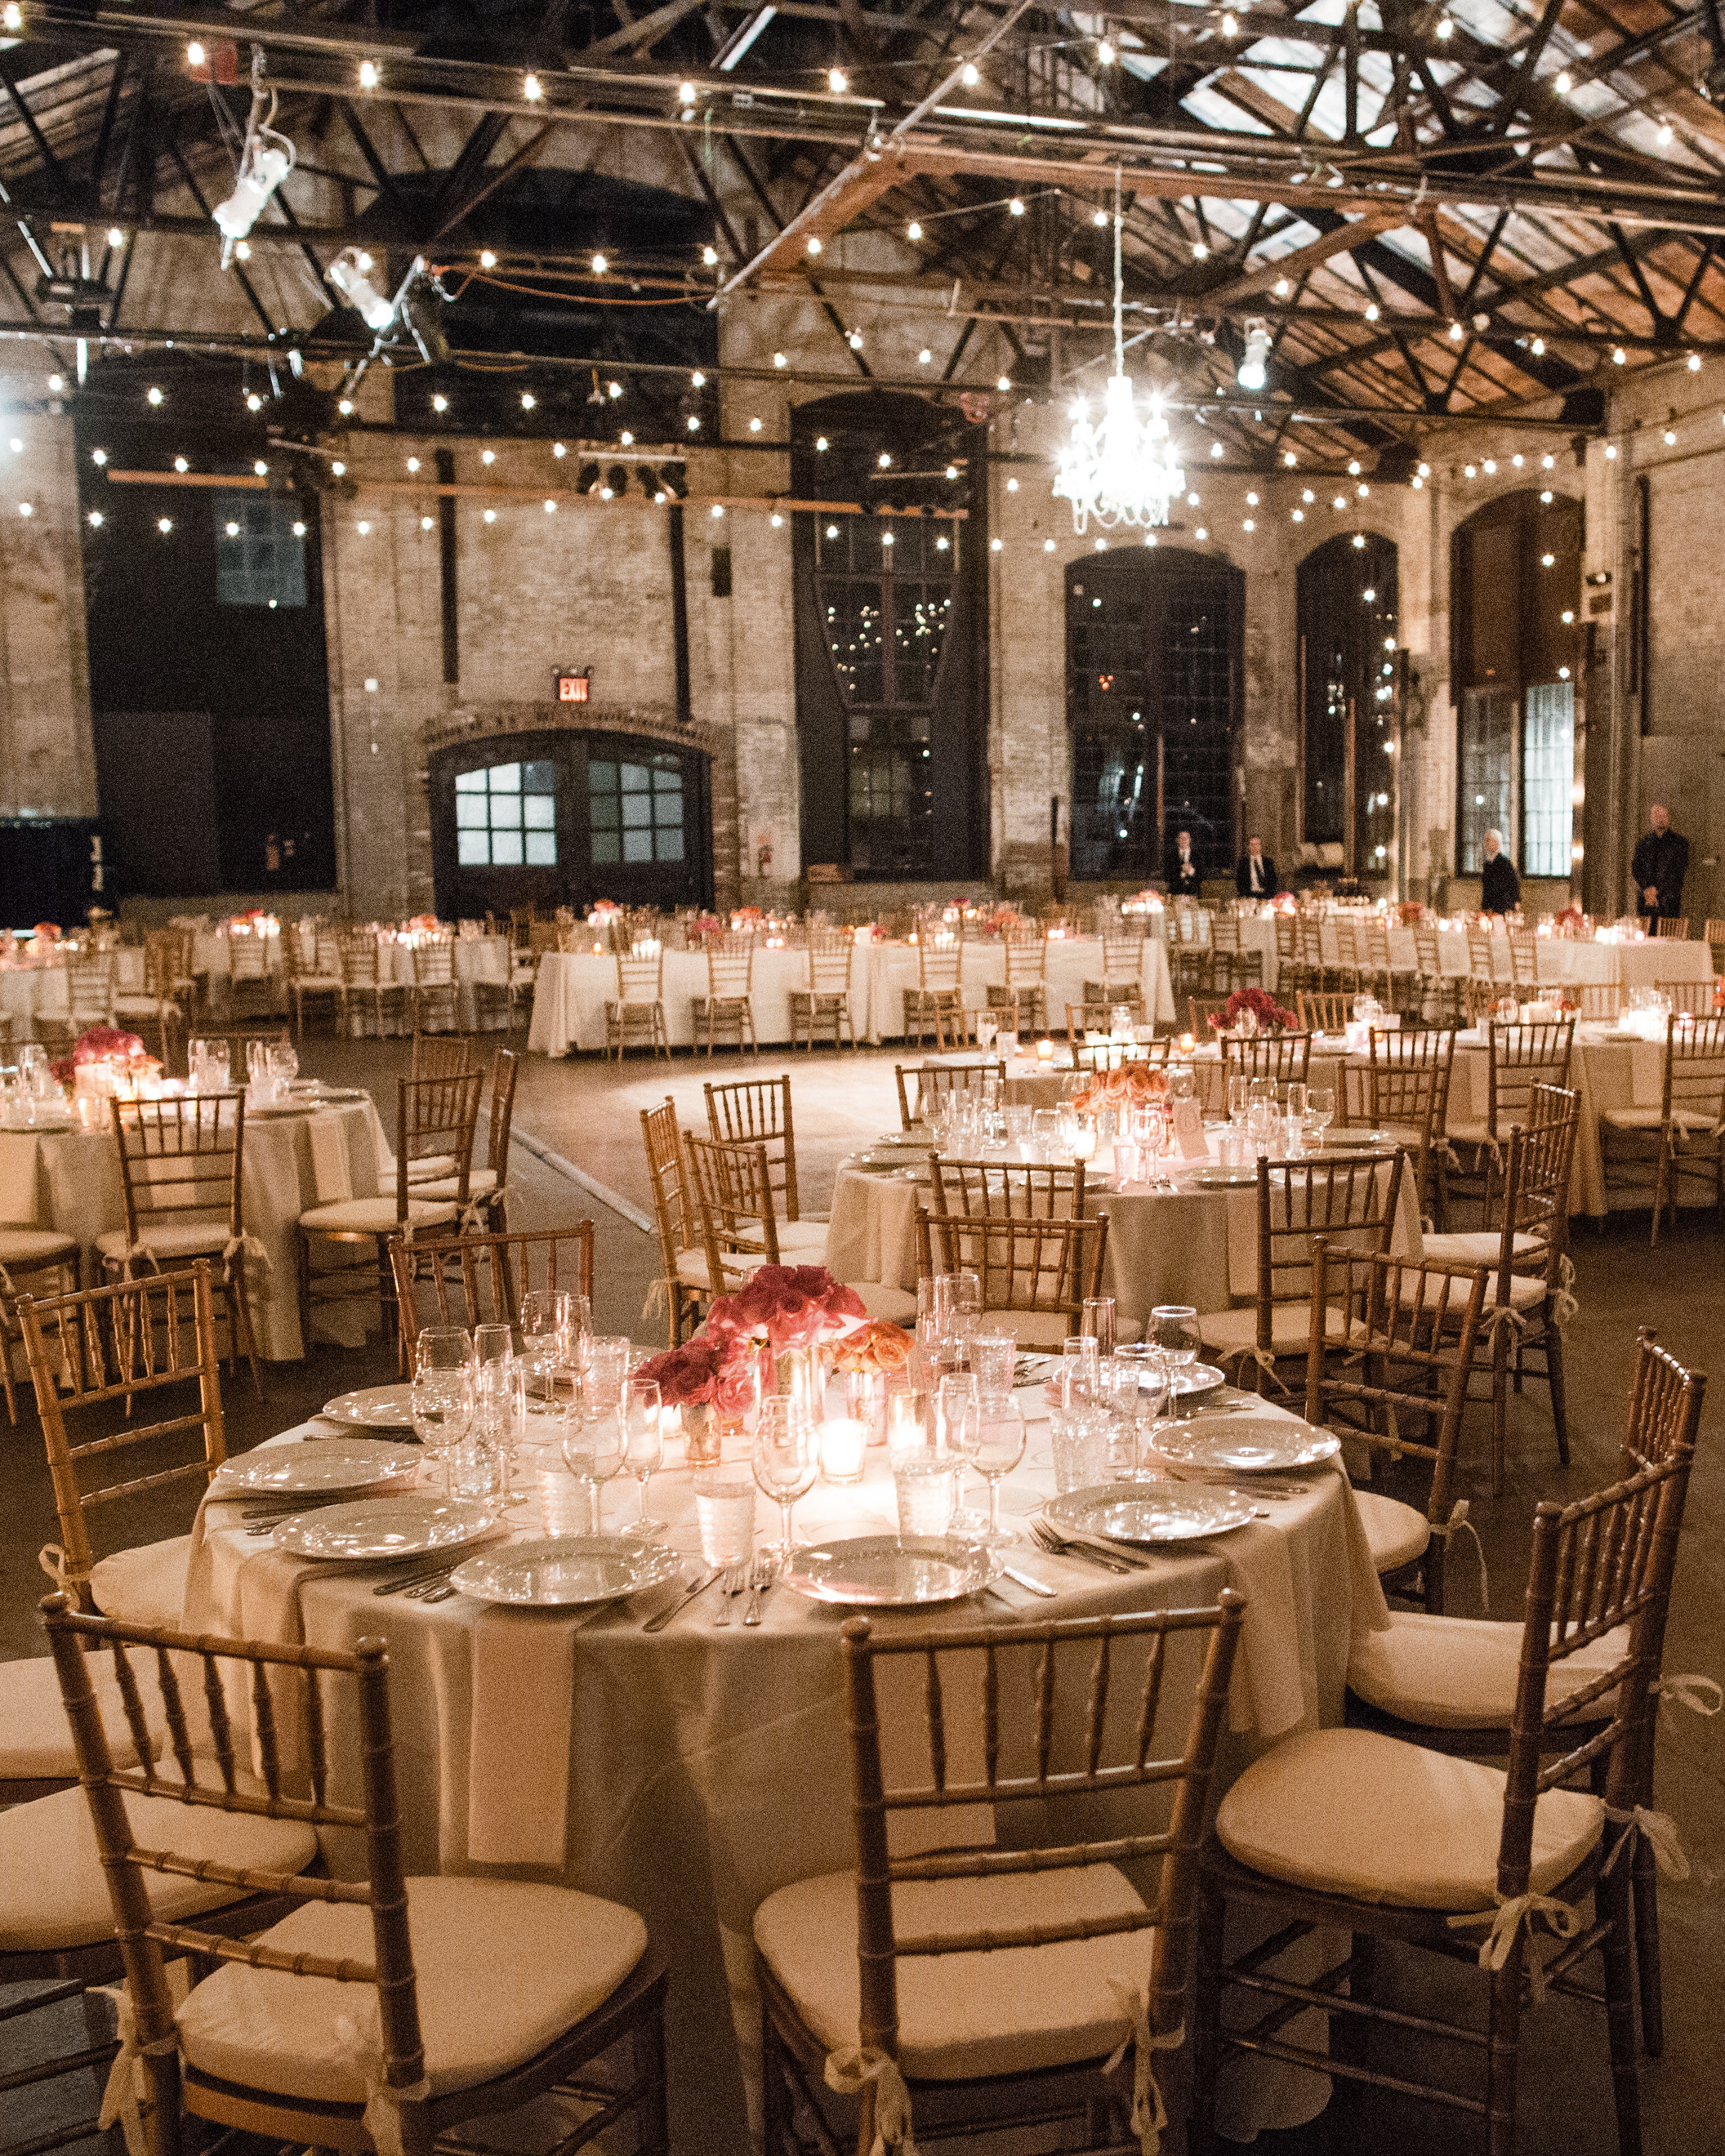 warehouse-wedding-venue-basilica-hudson-new-york-0815.jpg